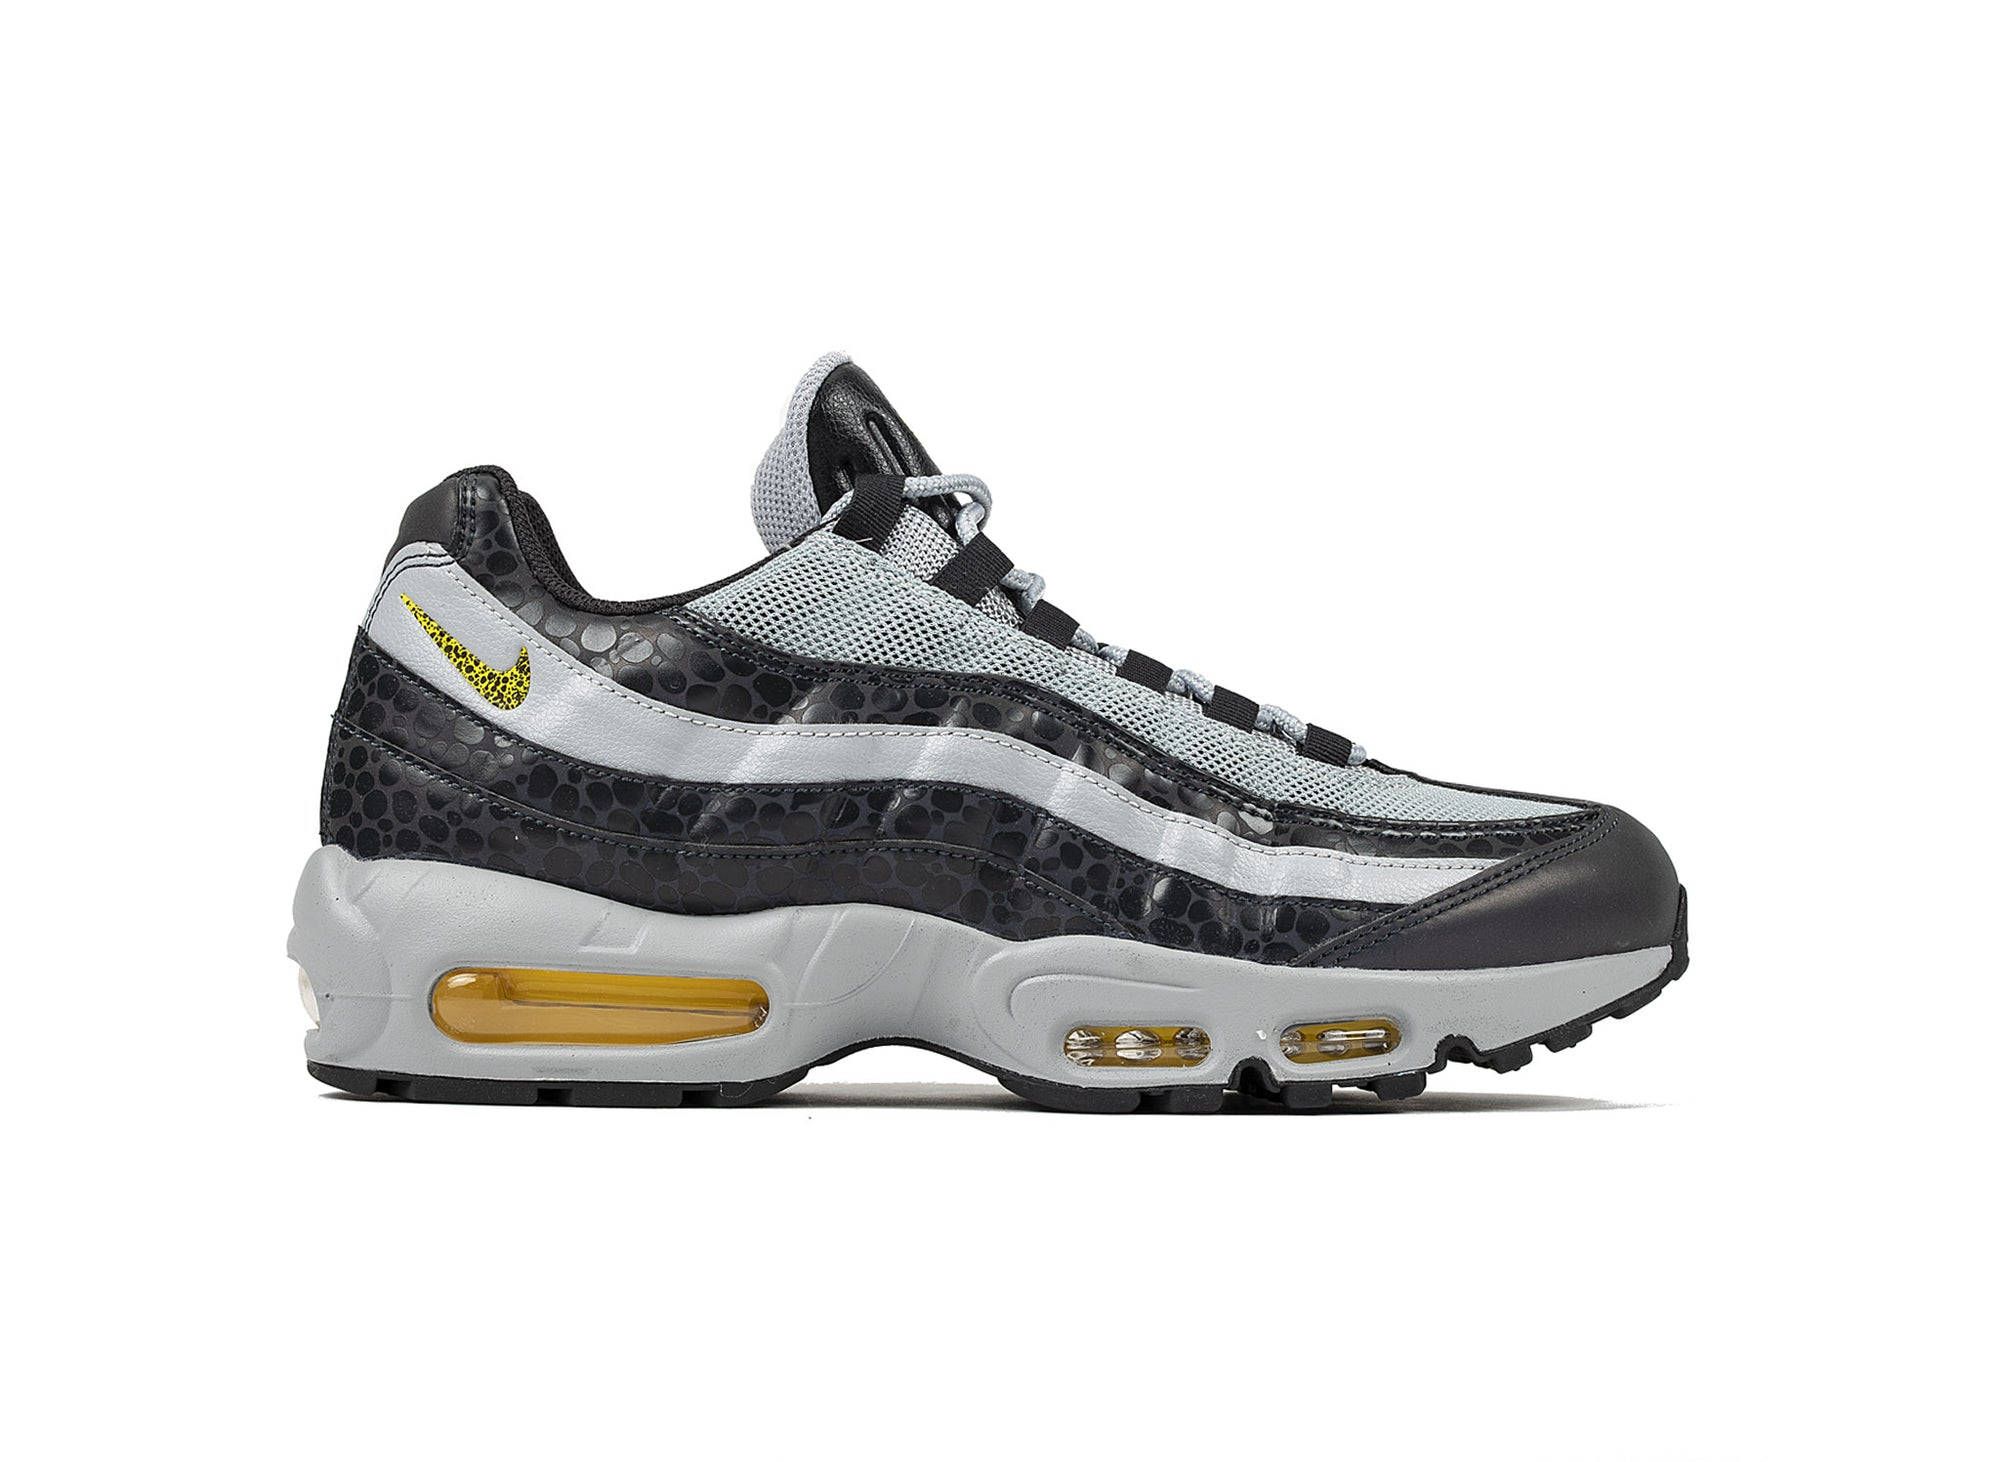 754a0643d6 NIKE AIR MAX 95 SE REFLECTIVE - Oneness Boutique